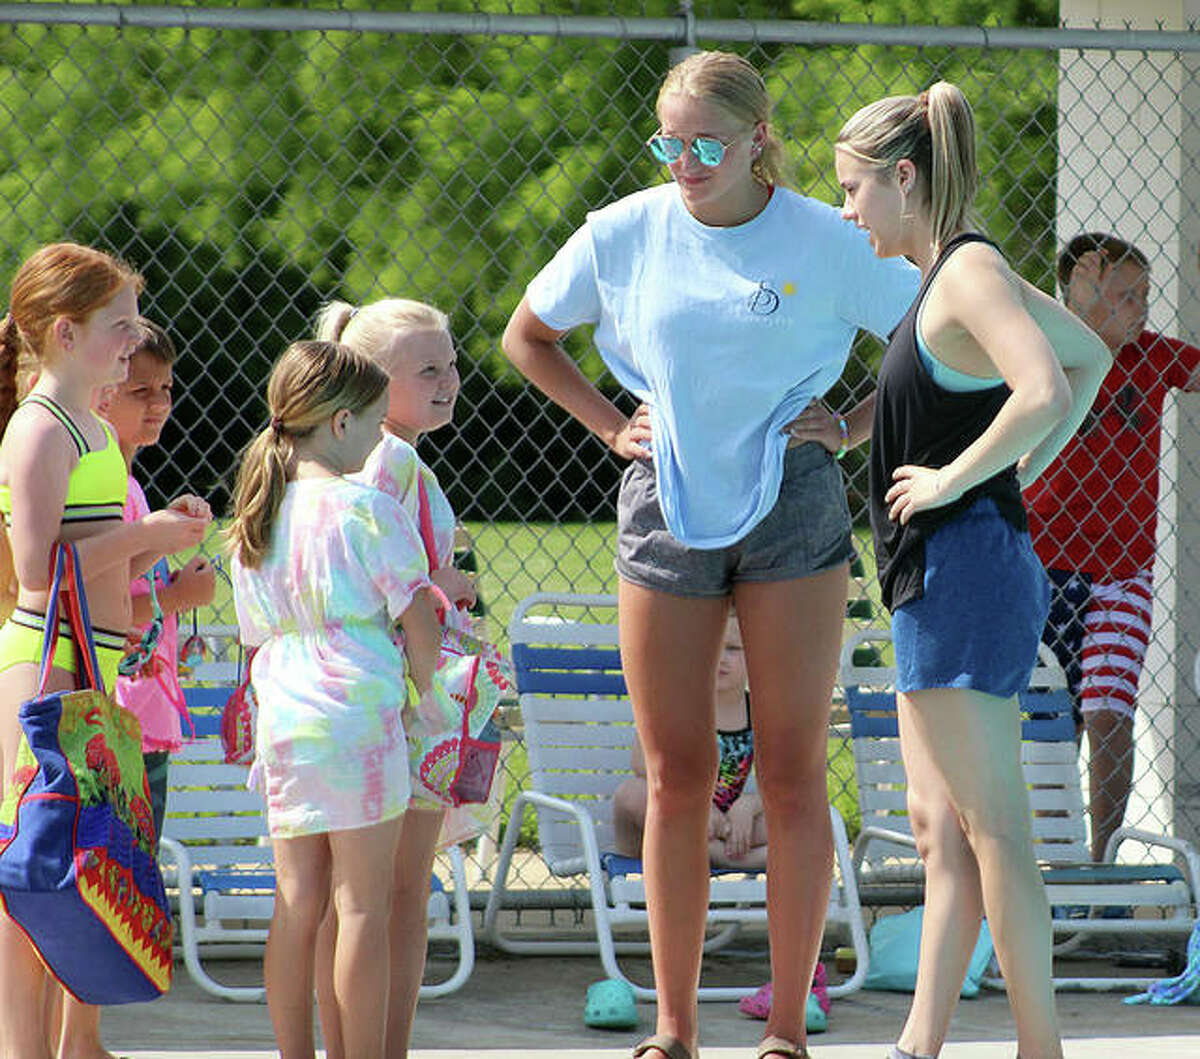 Summers Port assistant coaches Anna Moehn, left, and Ginny Schranck greet some of the younger swimmers at the first practice of the season.